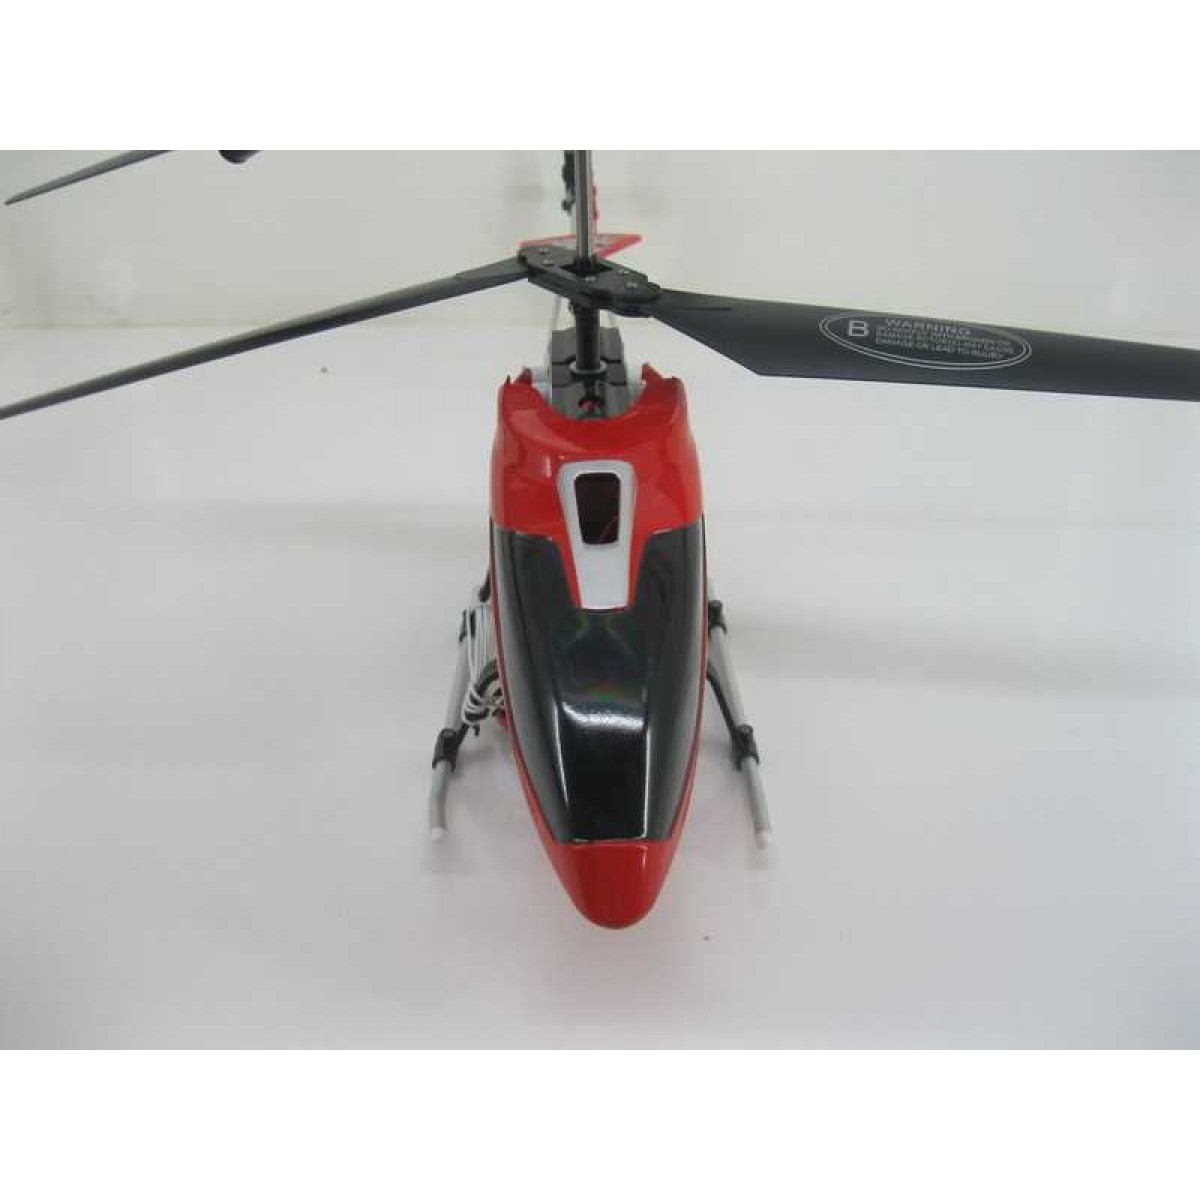 remote control airplanes for sale cheap with 46cm Remote Control Rc Helicopter With Gyro Stability L131 1 on 18x18x6cm Mini Four Axis Remote Control Rc Vehicle besides 46cm Remote Control Rc Helicopter With Gyro Stability L131 1 additionally P 61 Black Widow Rc as well Fire Truck Toys further Remote Control Cars Shop Buy Rc Cars Radio Control.